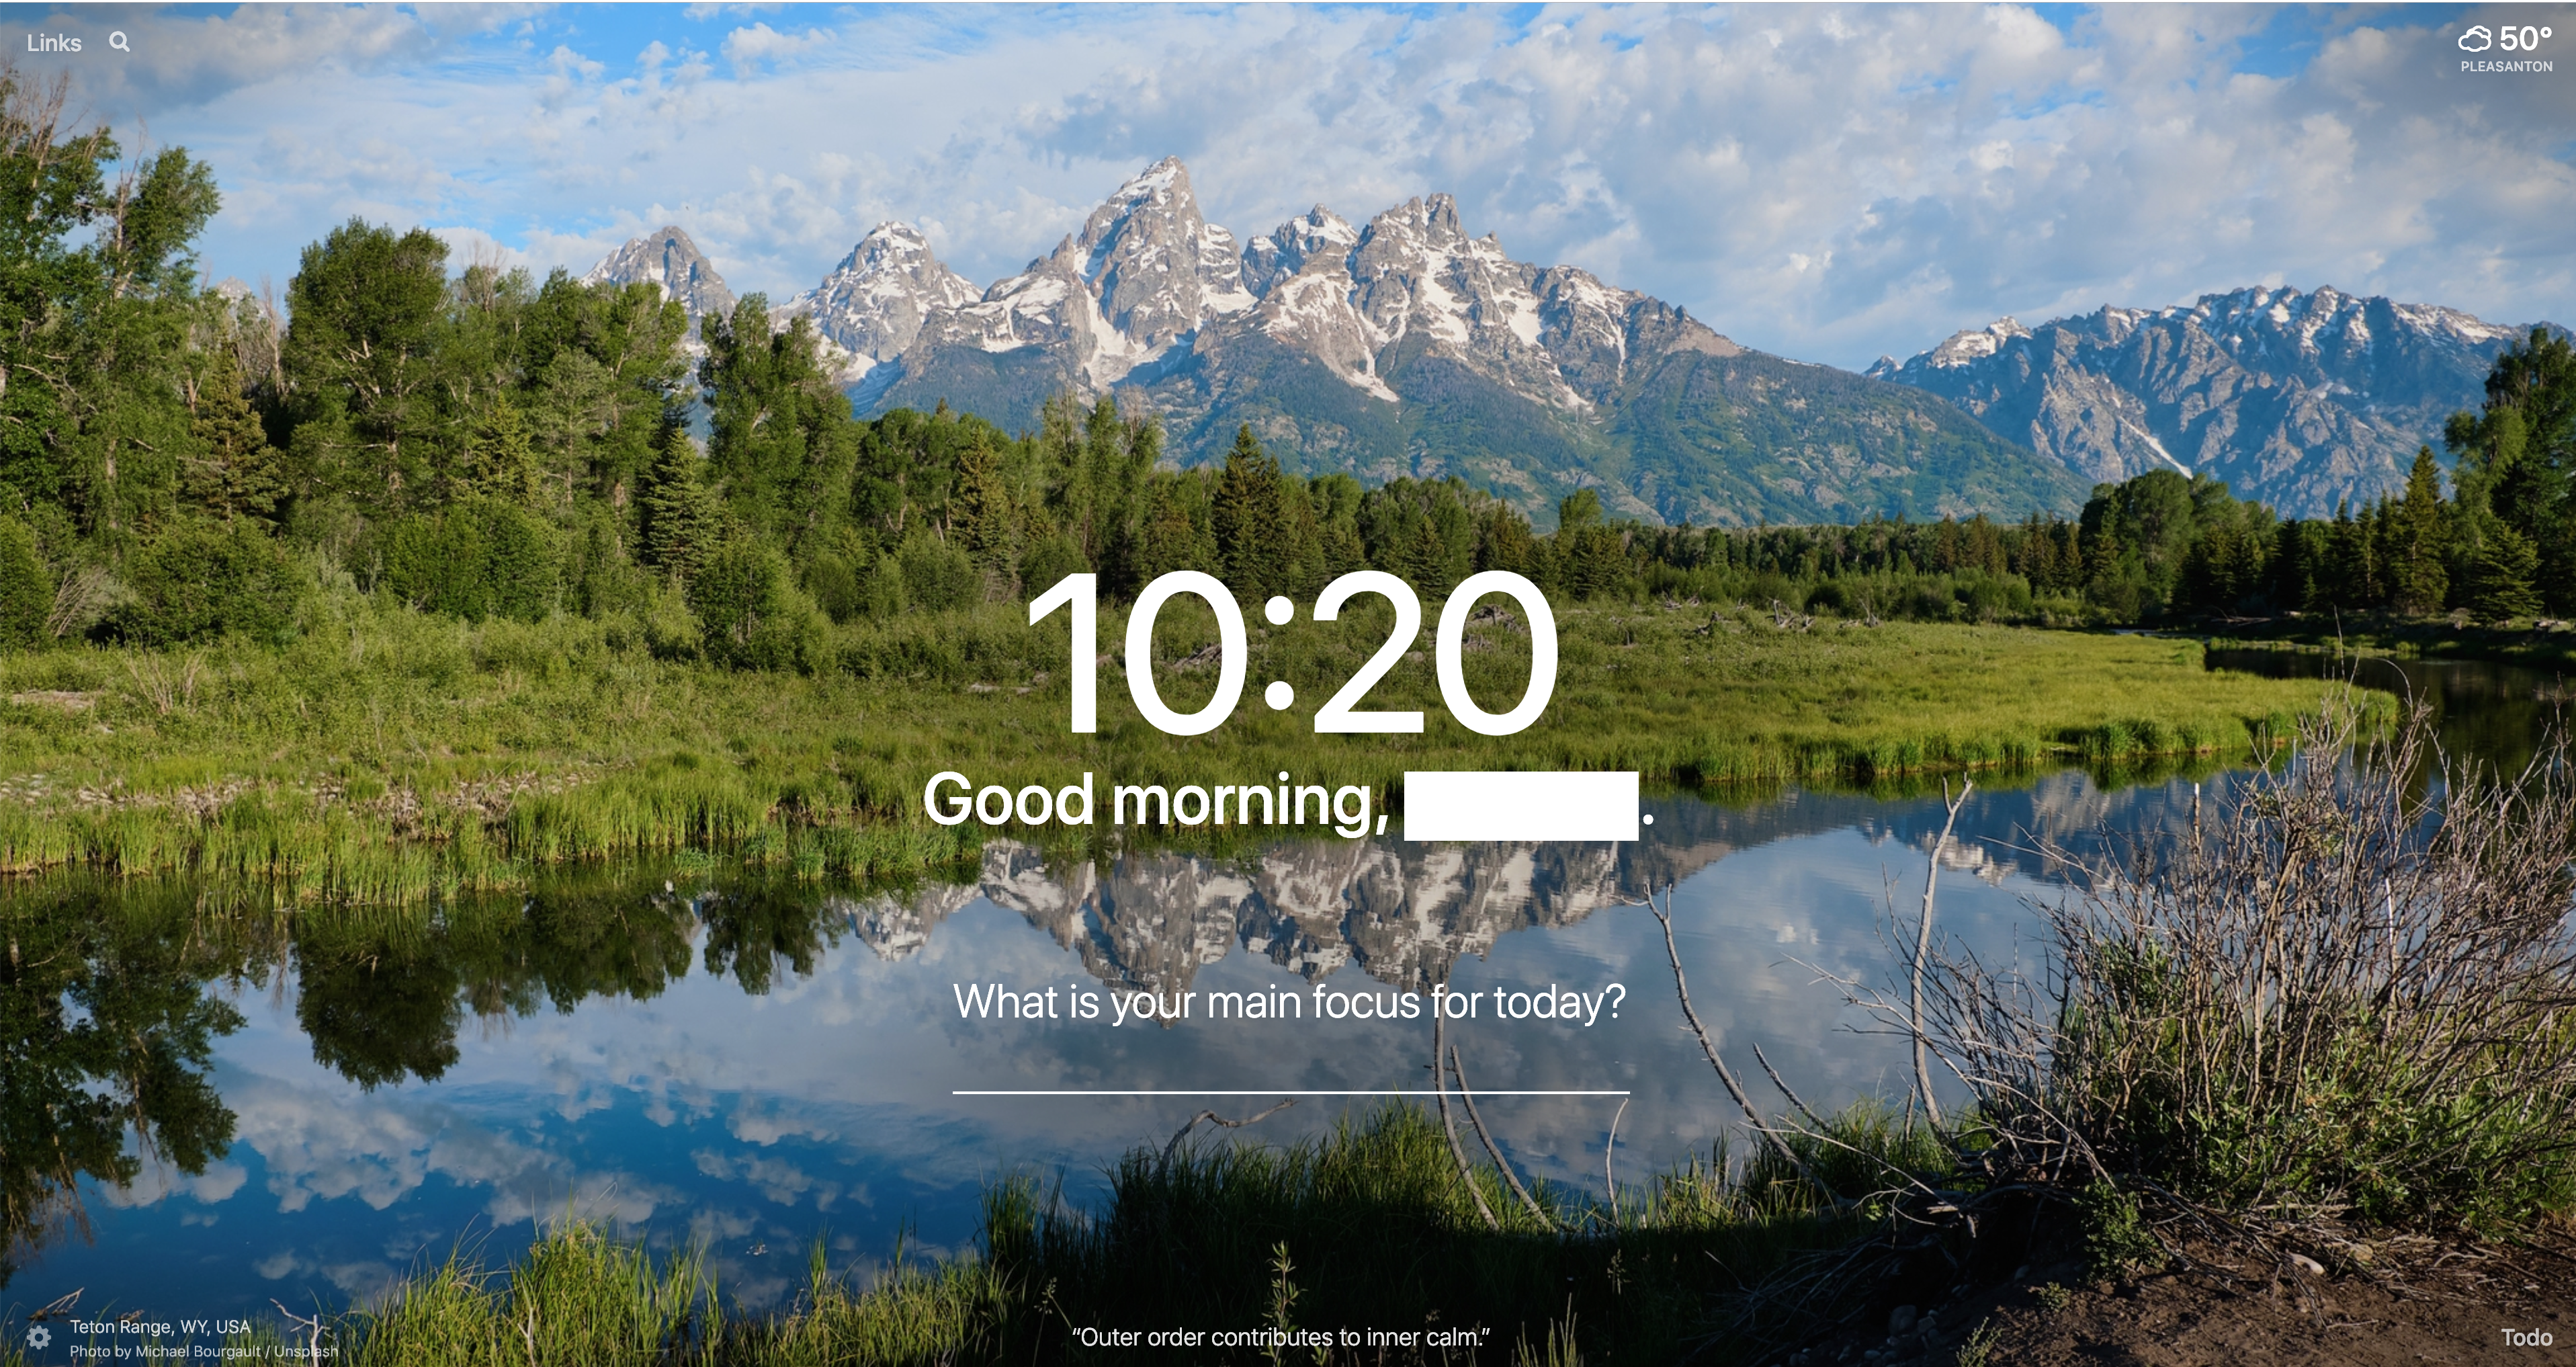 I use a chrome extension called momentum and it generates 3834x2034